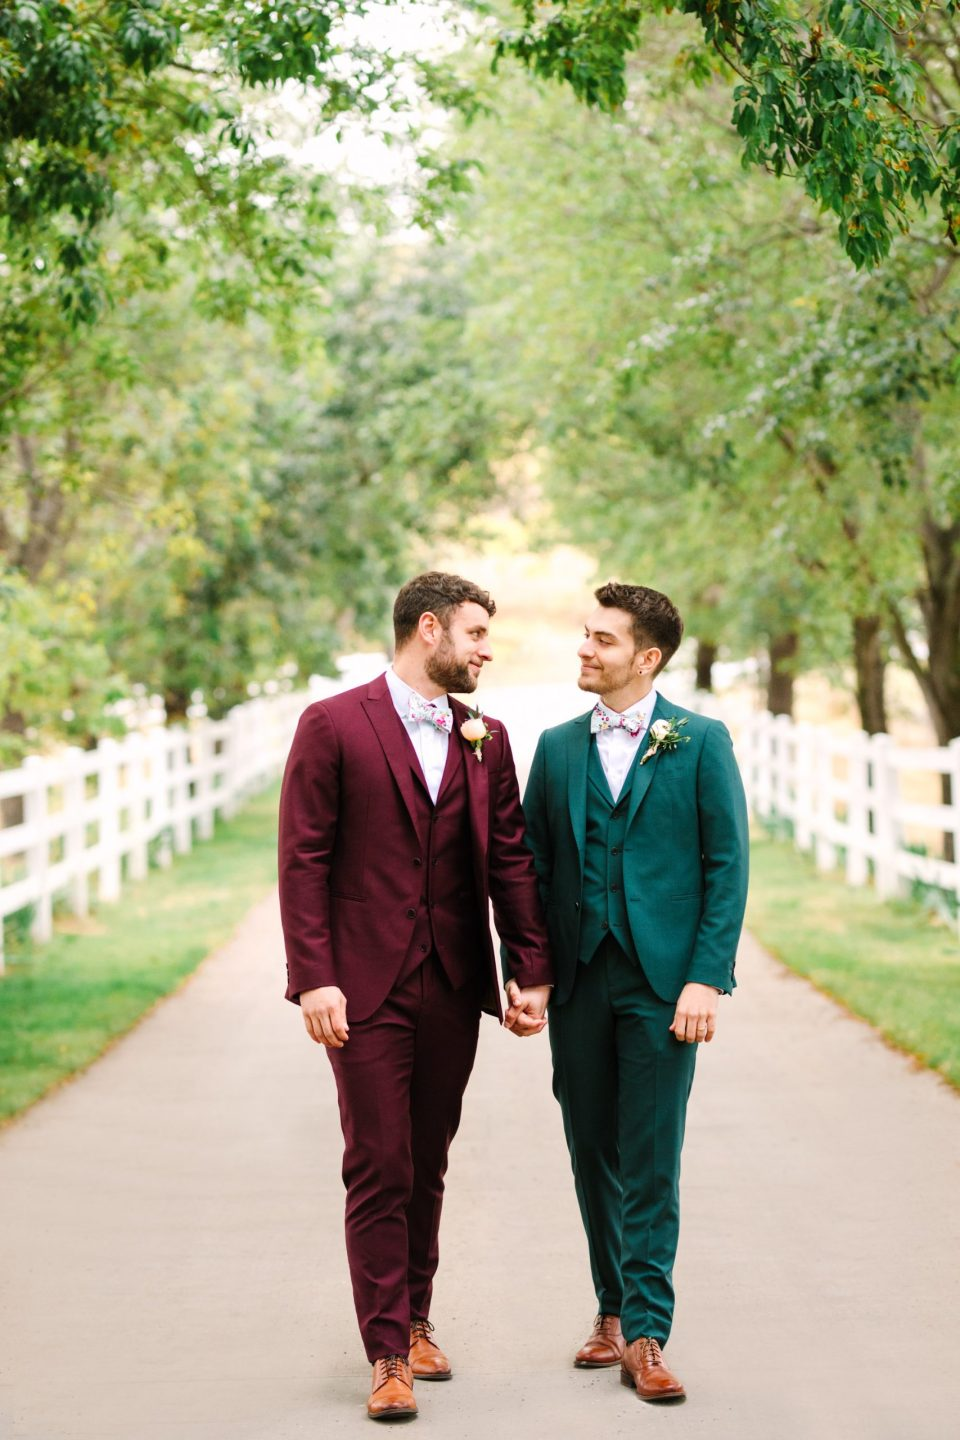 Two grooms walking by Mary Costa Photography